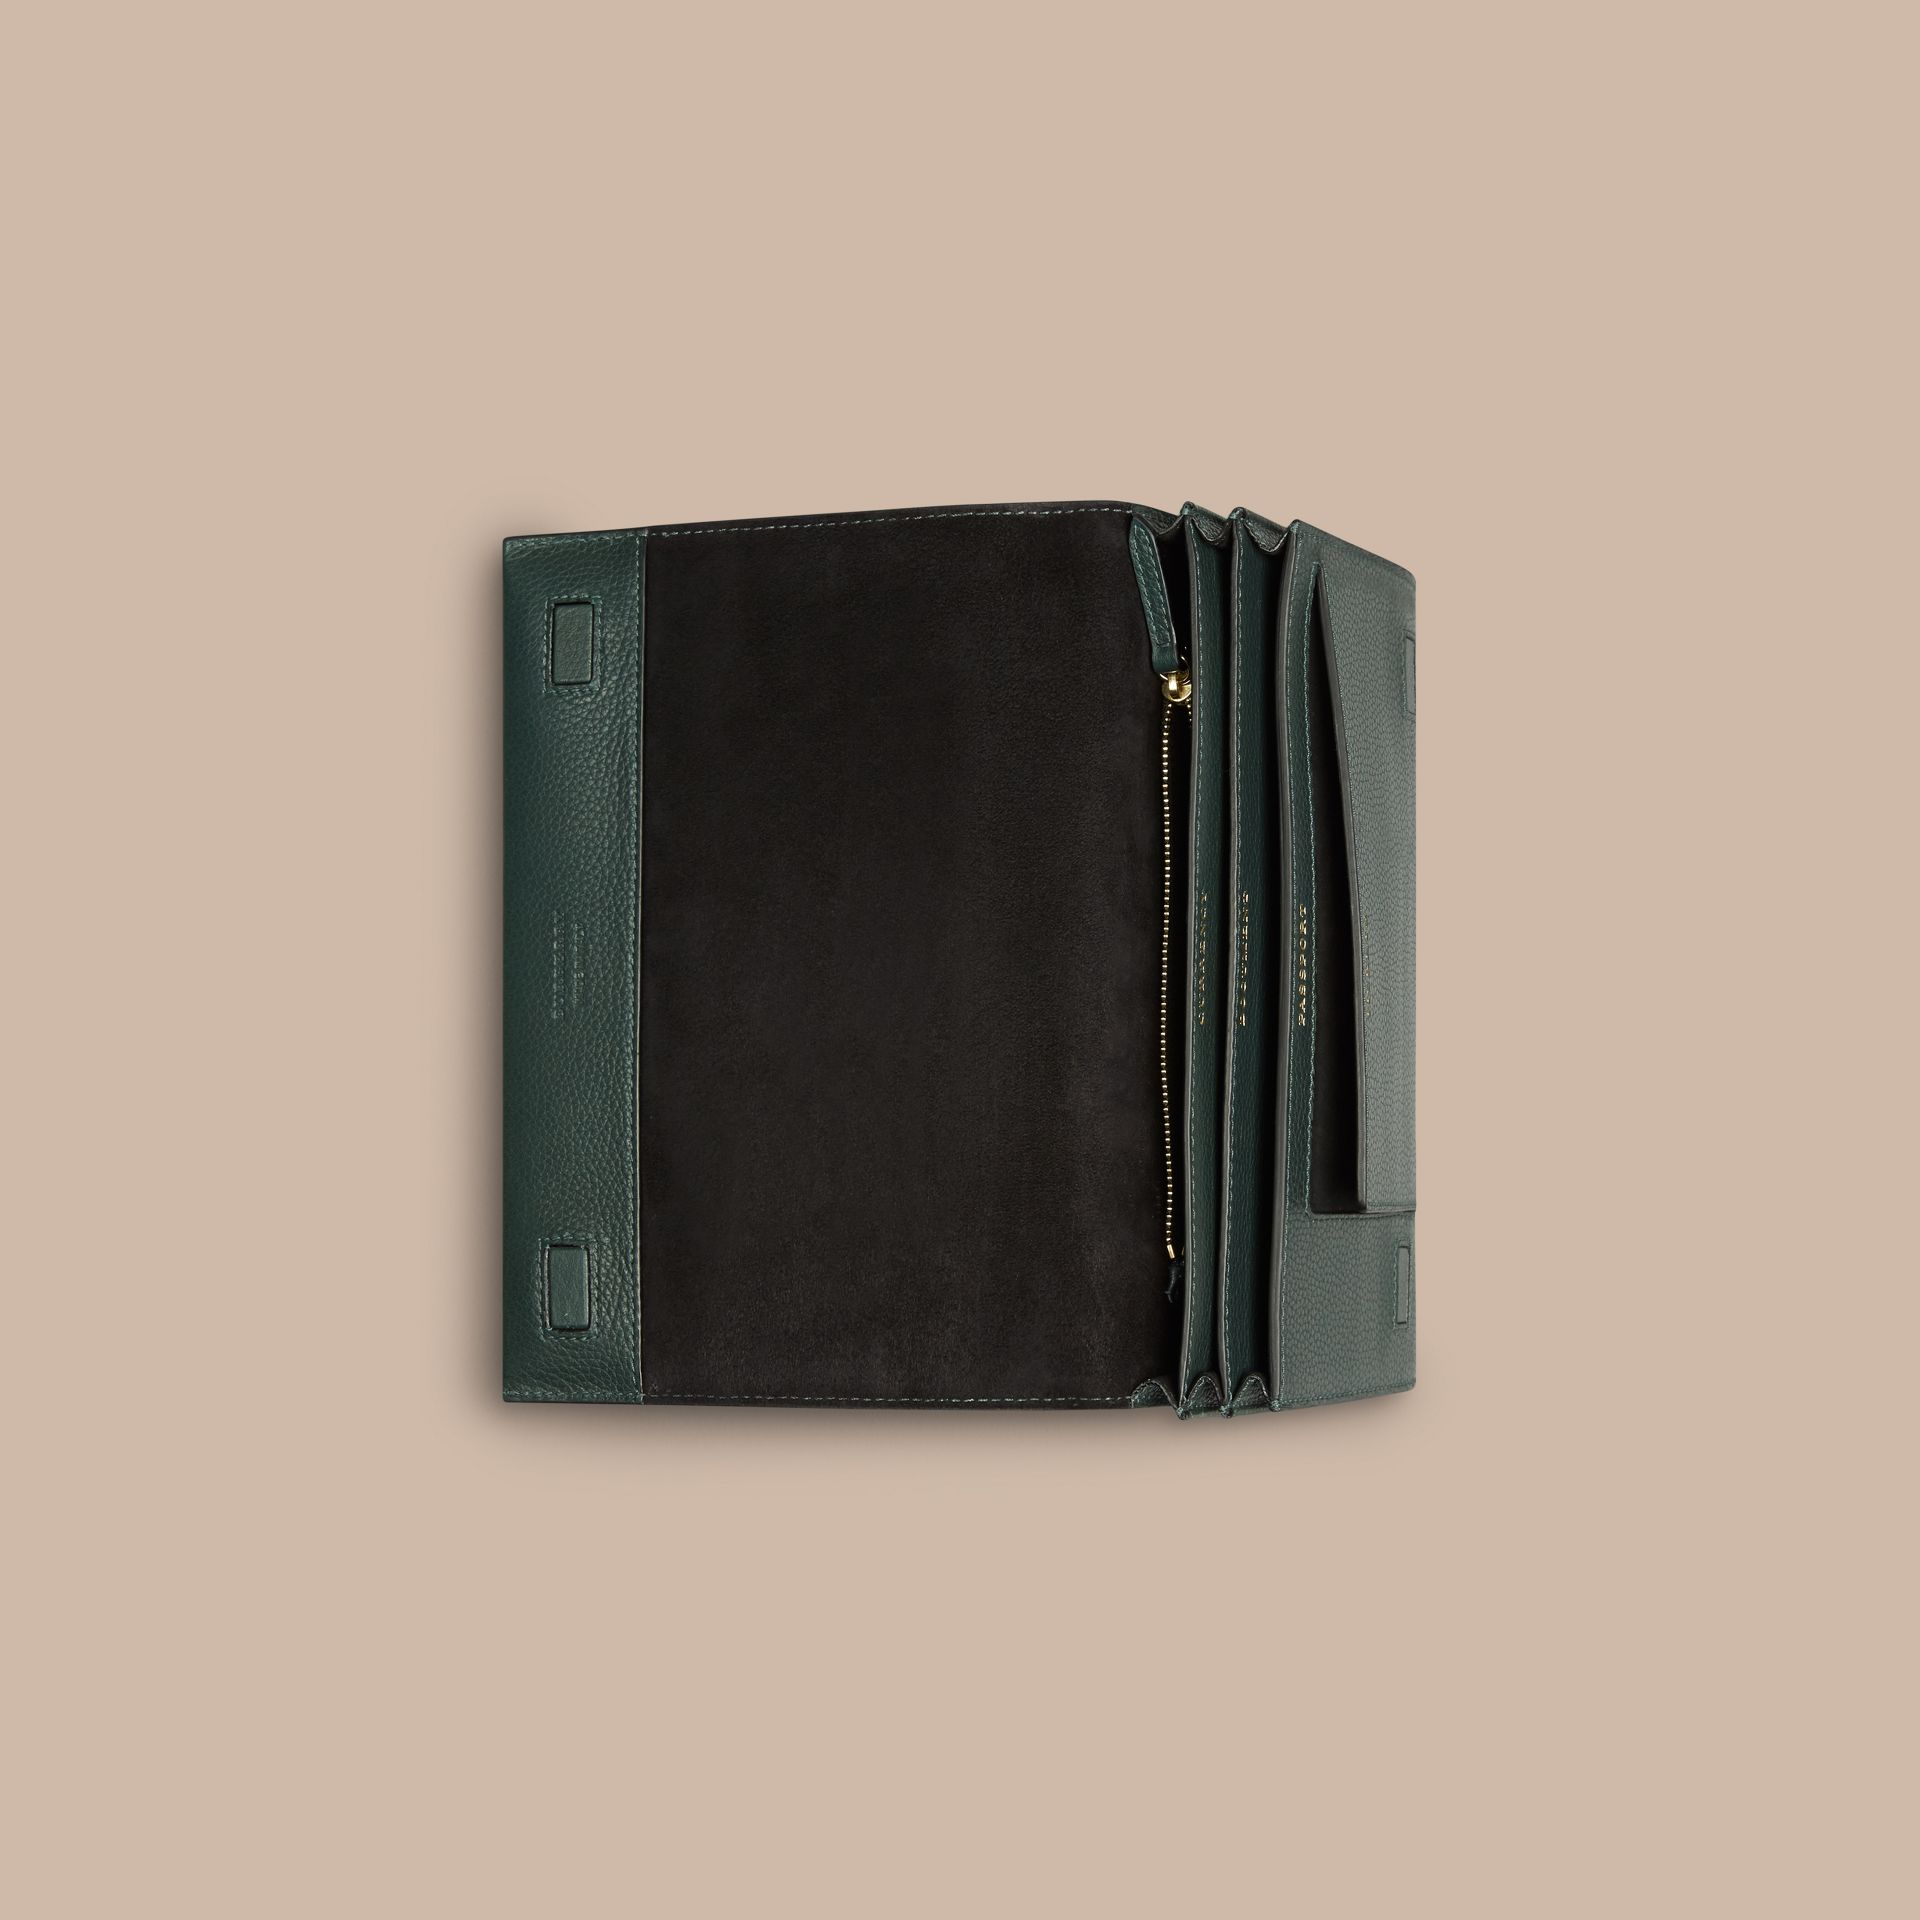 Grainy Leather Travel Wallet in Dark Forest Green - Men | Burberry - gallery image 3